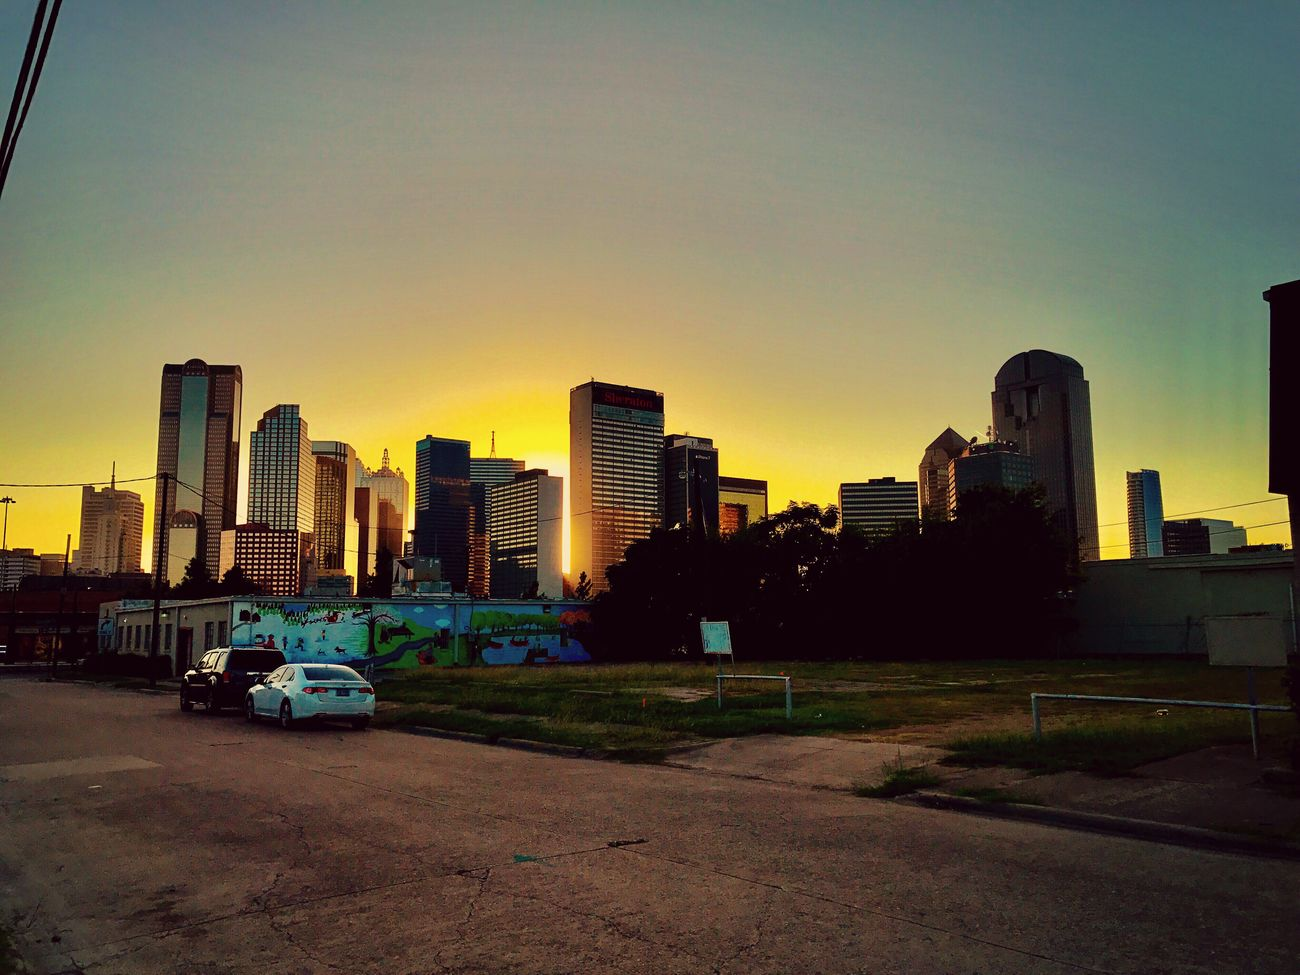 Architecture City Sunset Urban Skyline Dallasskyline City Skyline Dallas Texas Photography